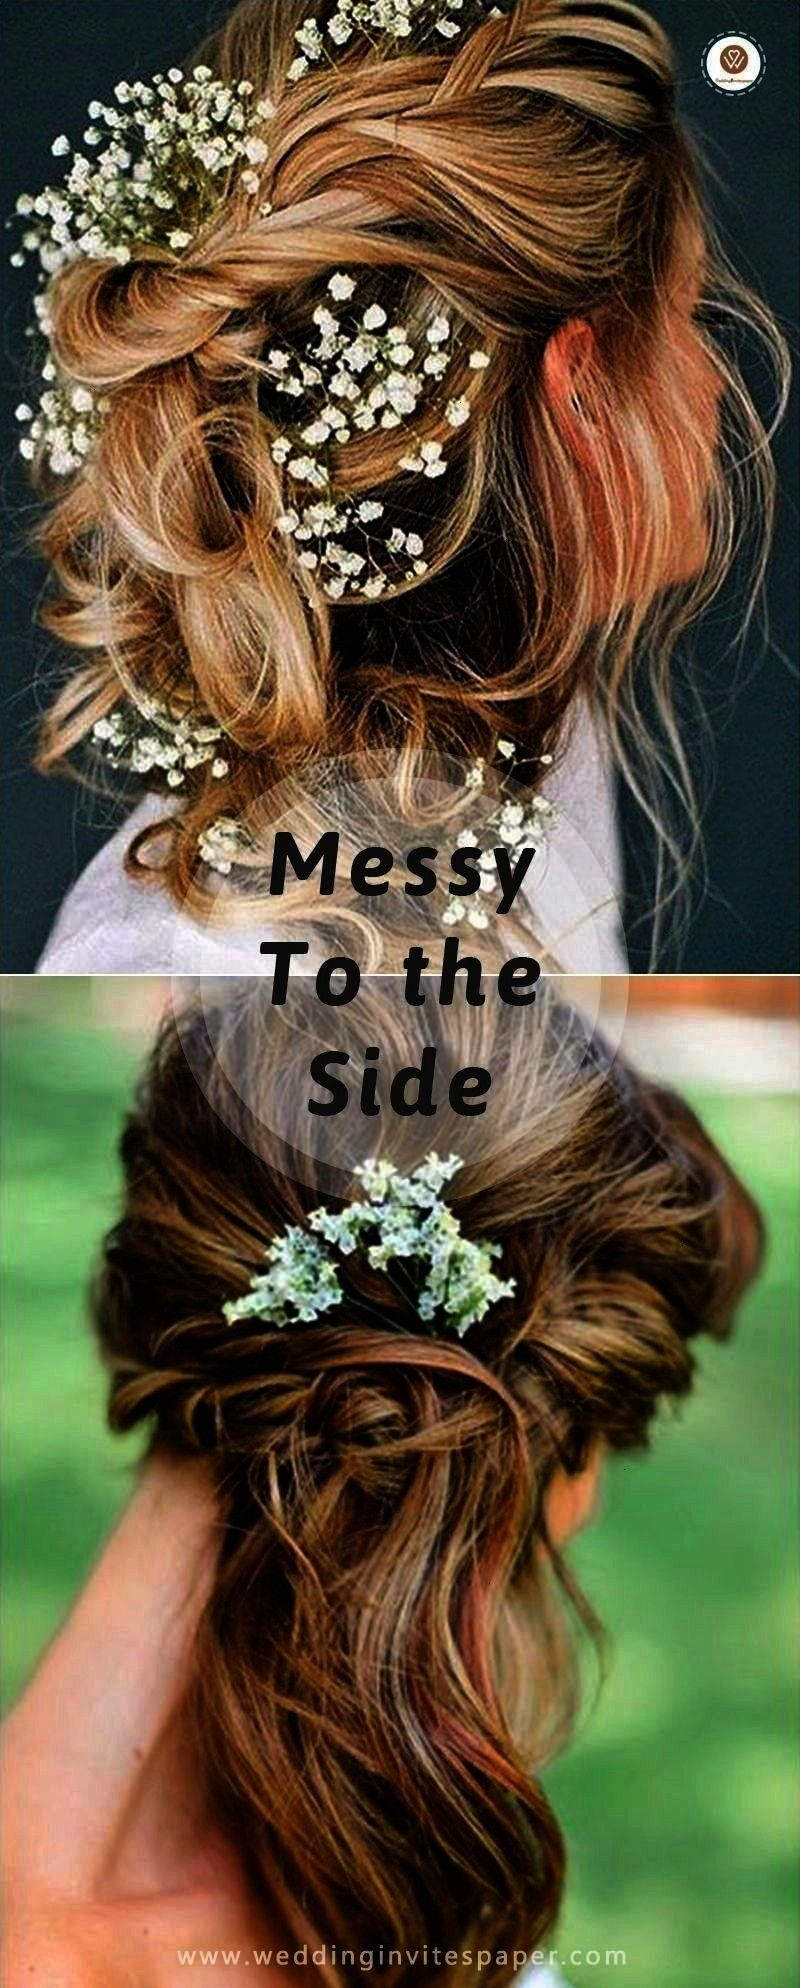 Hairstyles 17 Enchanted Rustic Wedding Hairstyles 17 Enchanted Rustic Wedding HairstylesLove natural styles Dont want to change yout curls to flat Want to make your 17 En...